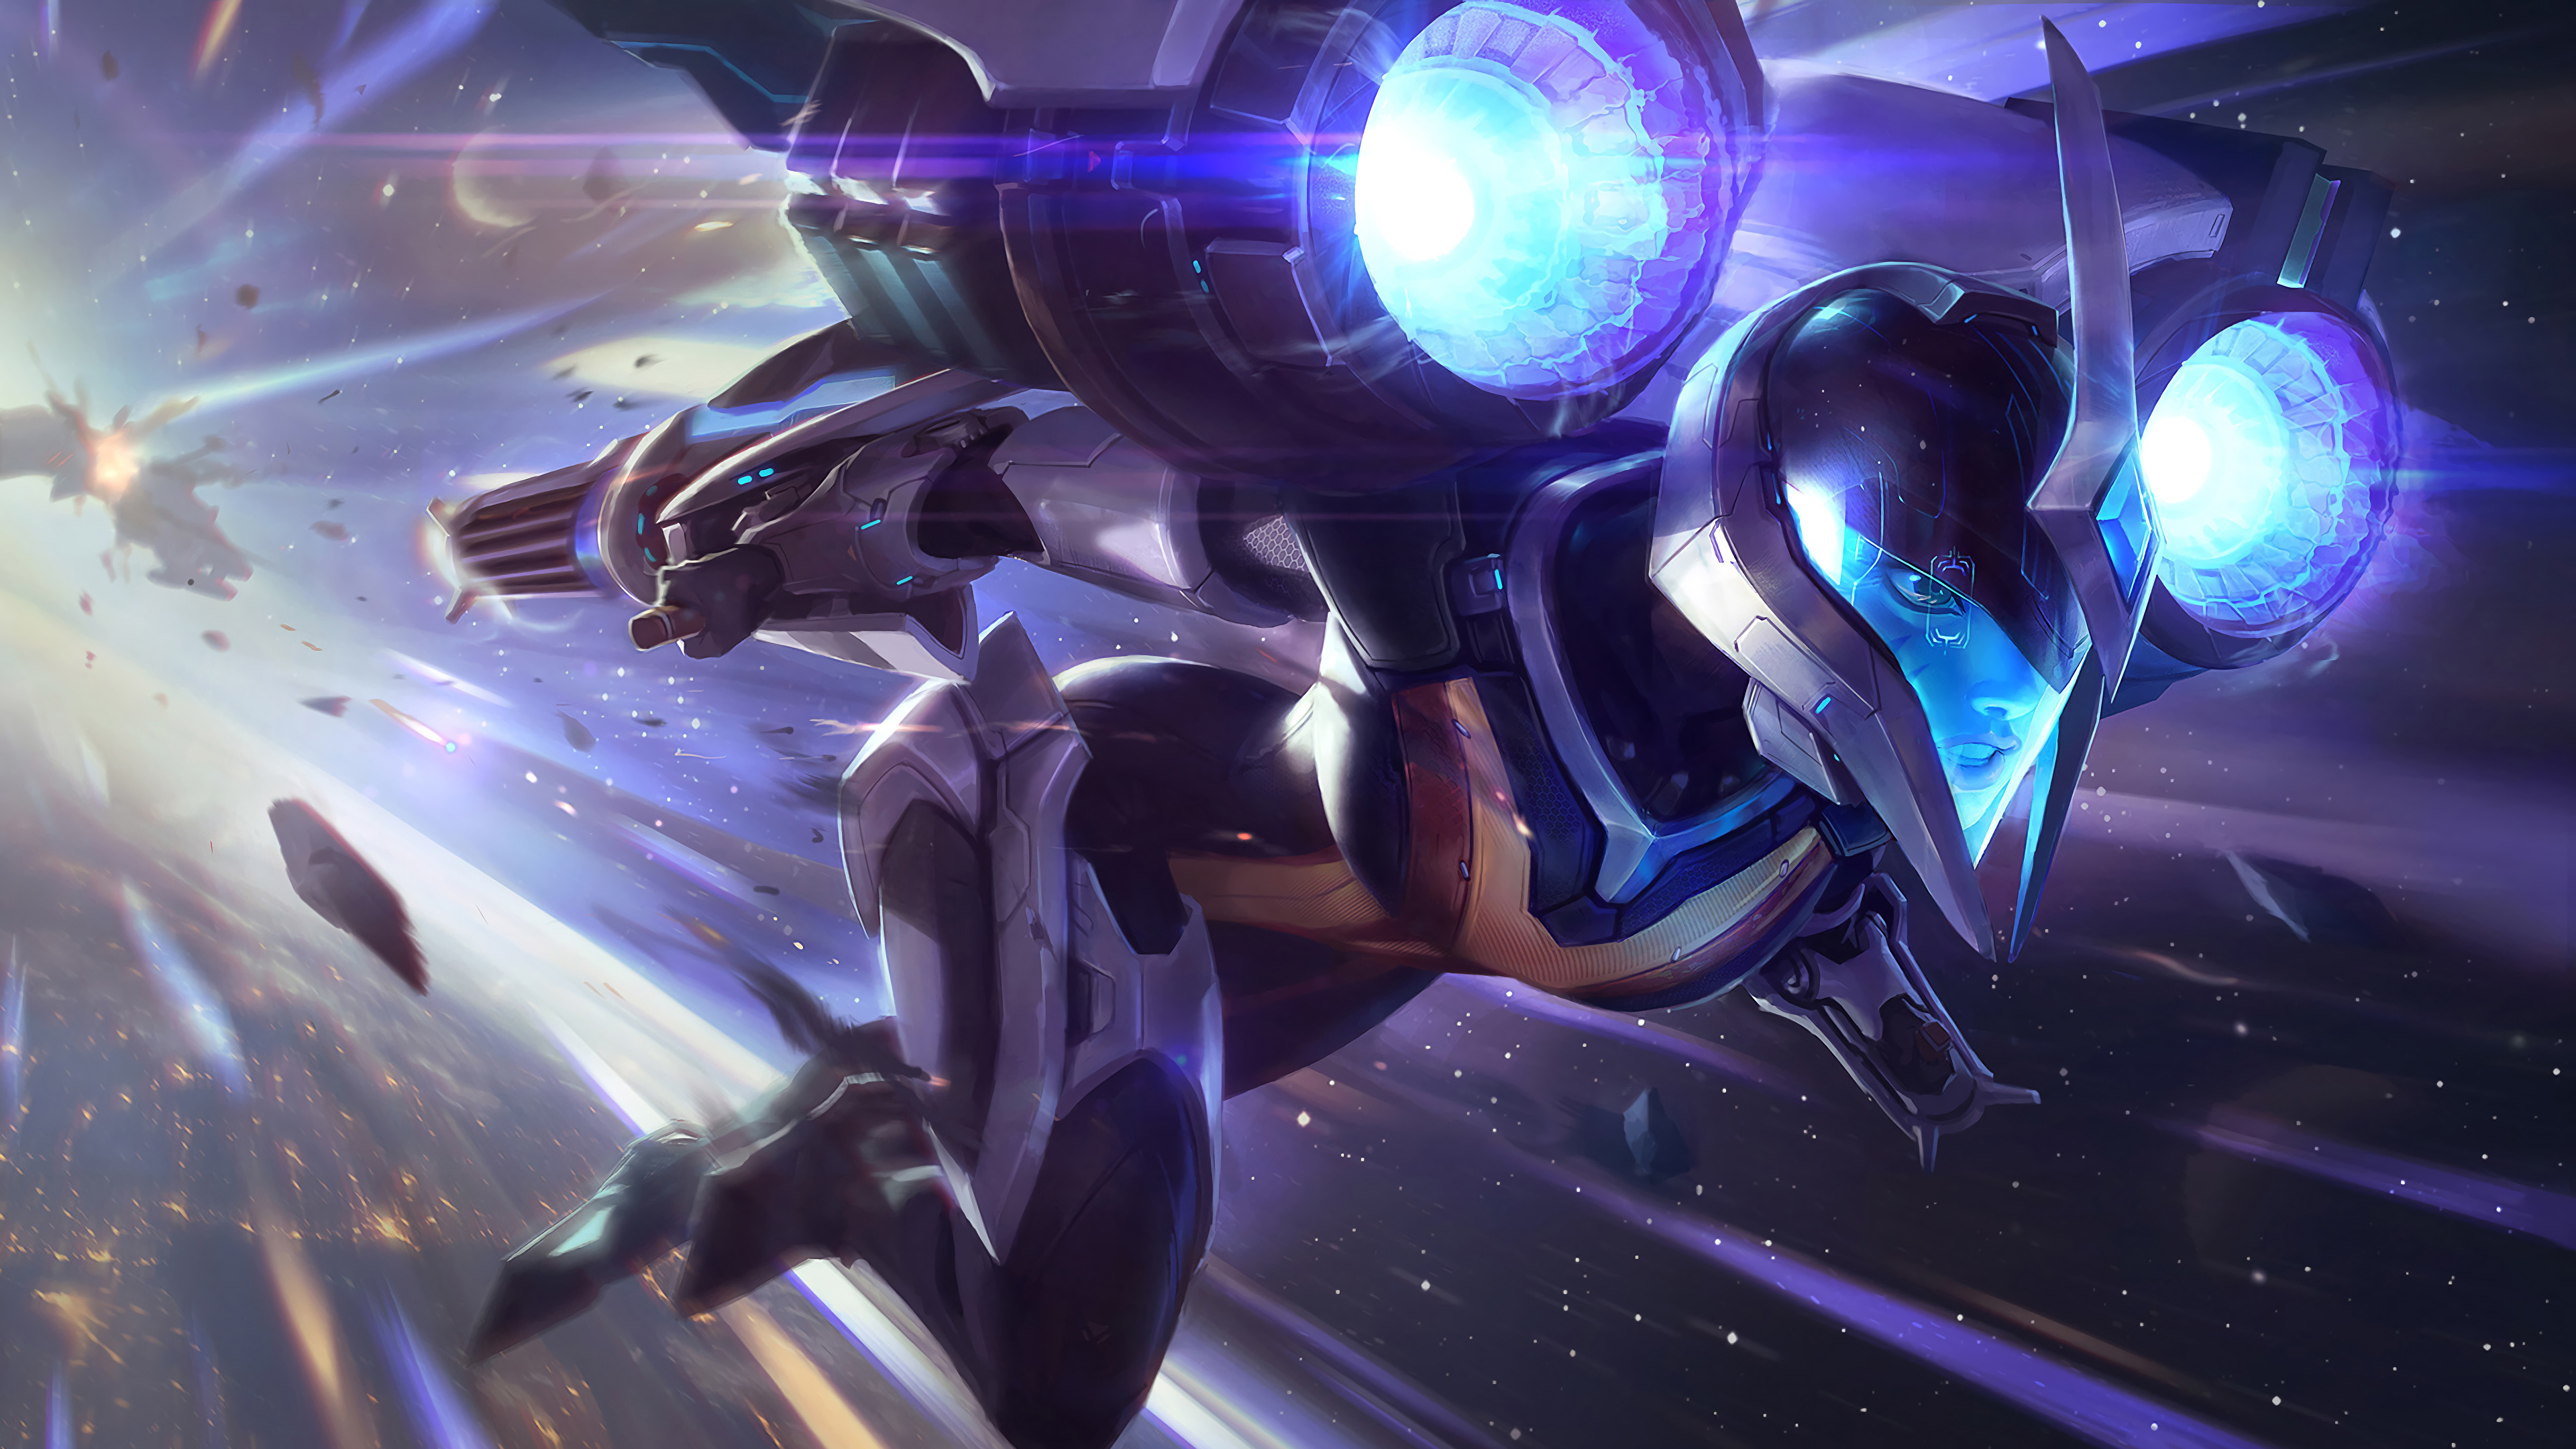 Kai Sa League Of Legends 4k Wallpapers Hd Wallpapers